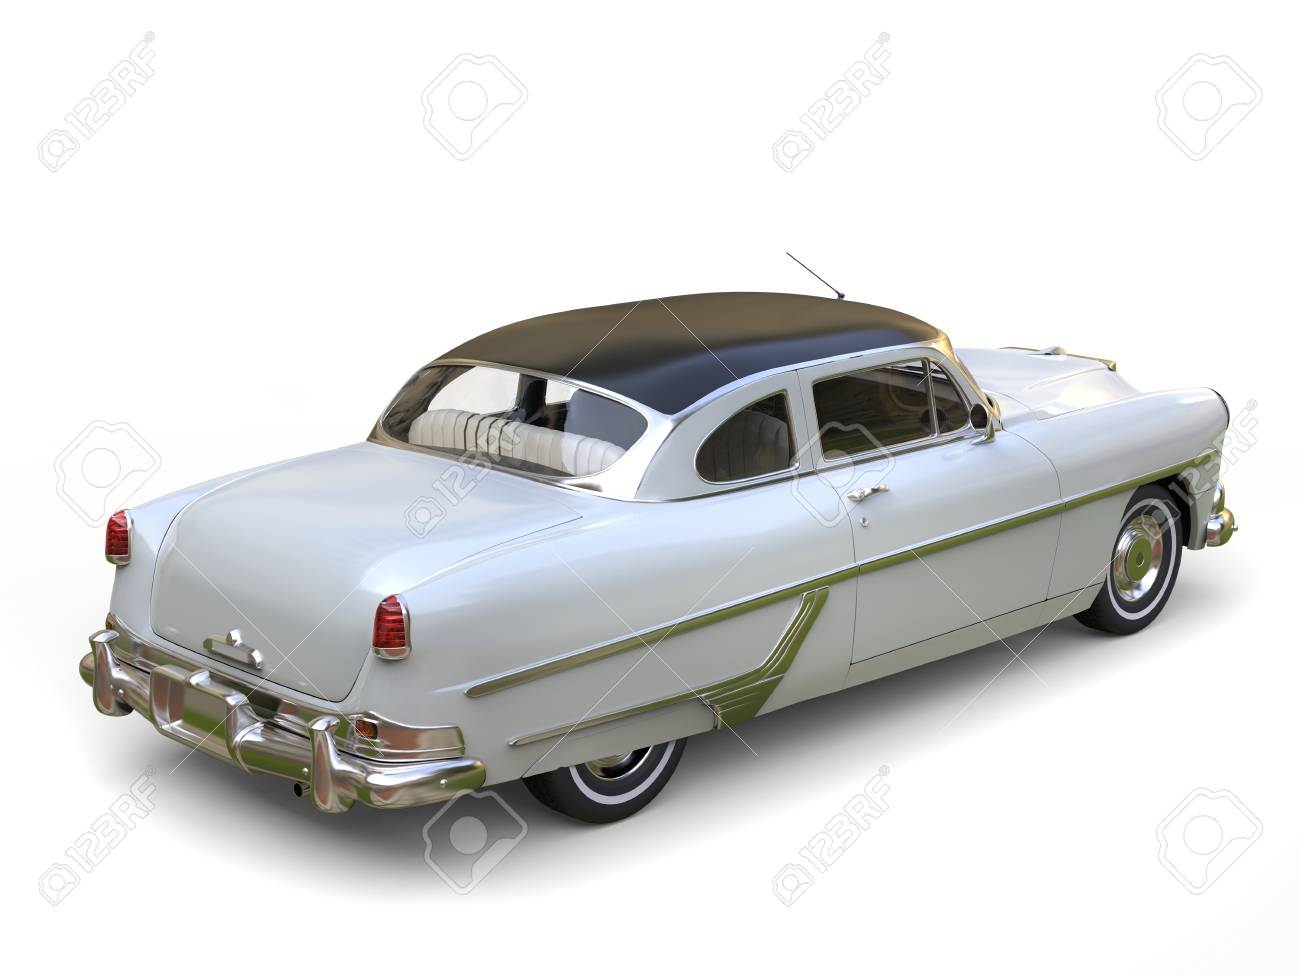 Amazing Old Convertible White Car With Black Roof Stock Photo ...